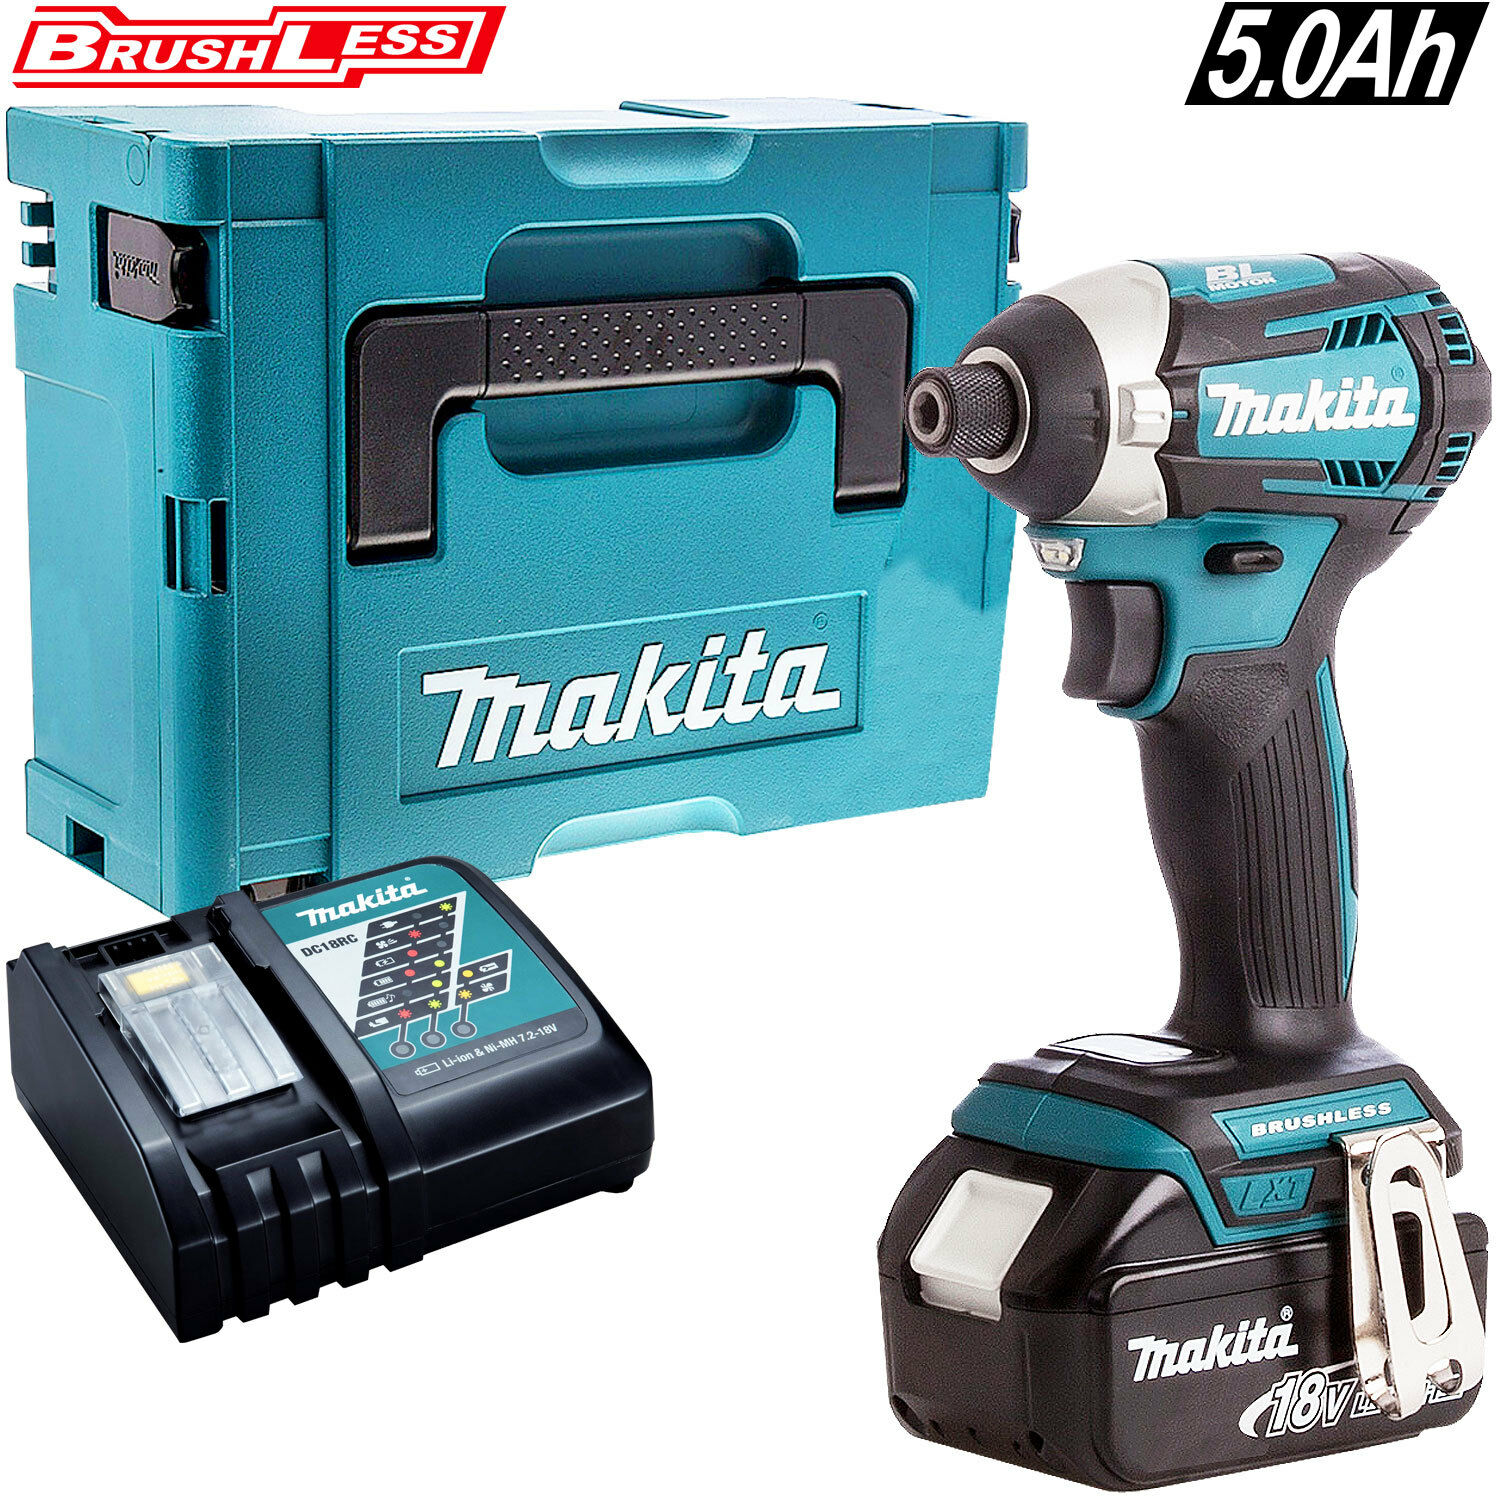 Makita DTD154Z 18V Brushless Impact Driver With 1 x 5.0Ah Battery Charger & Case